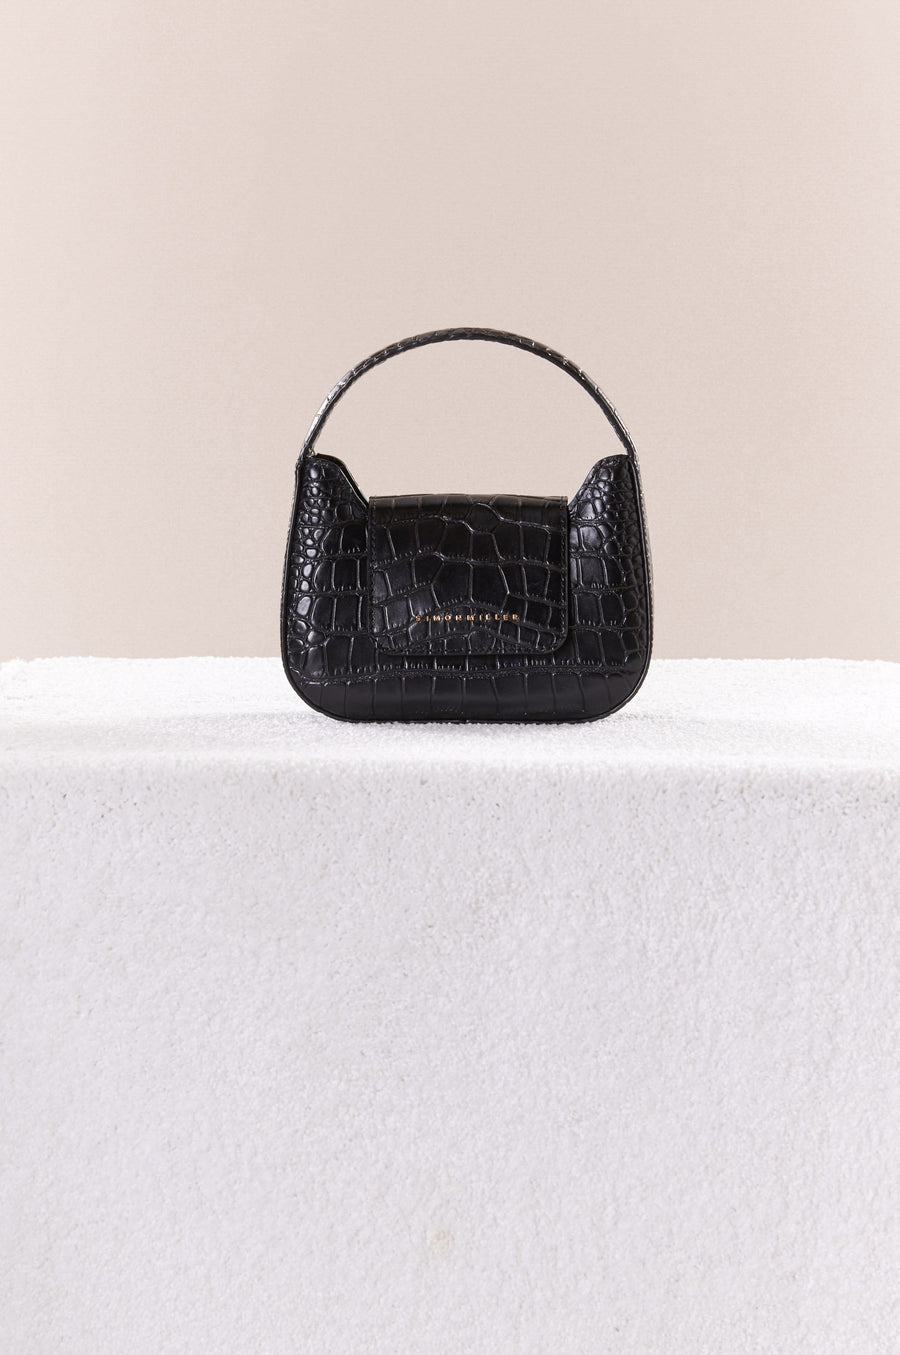 Mini Retro Bag in Black